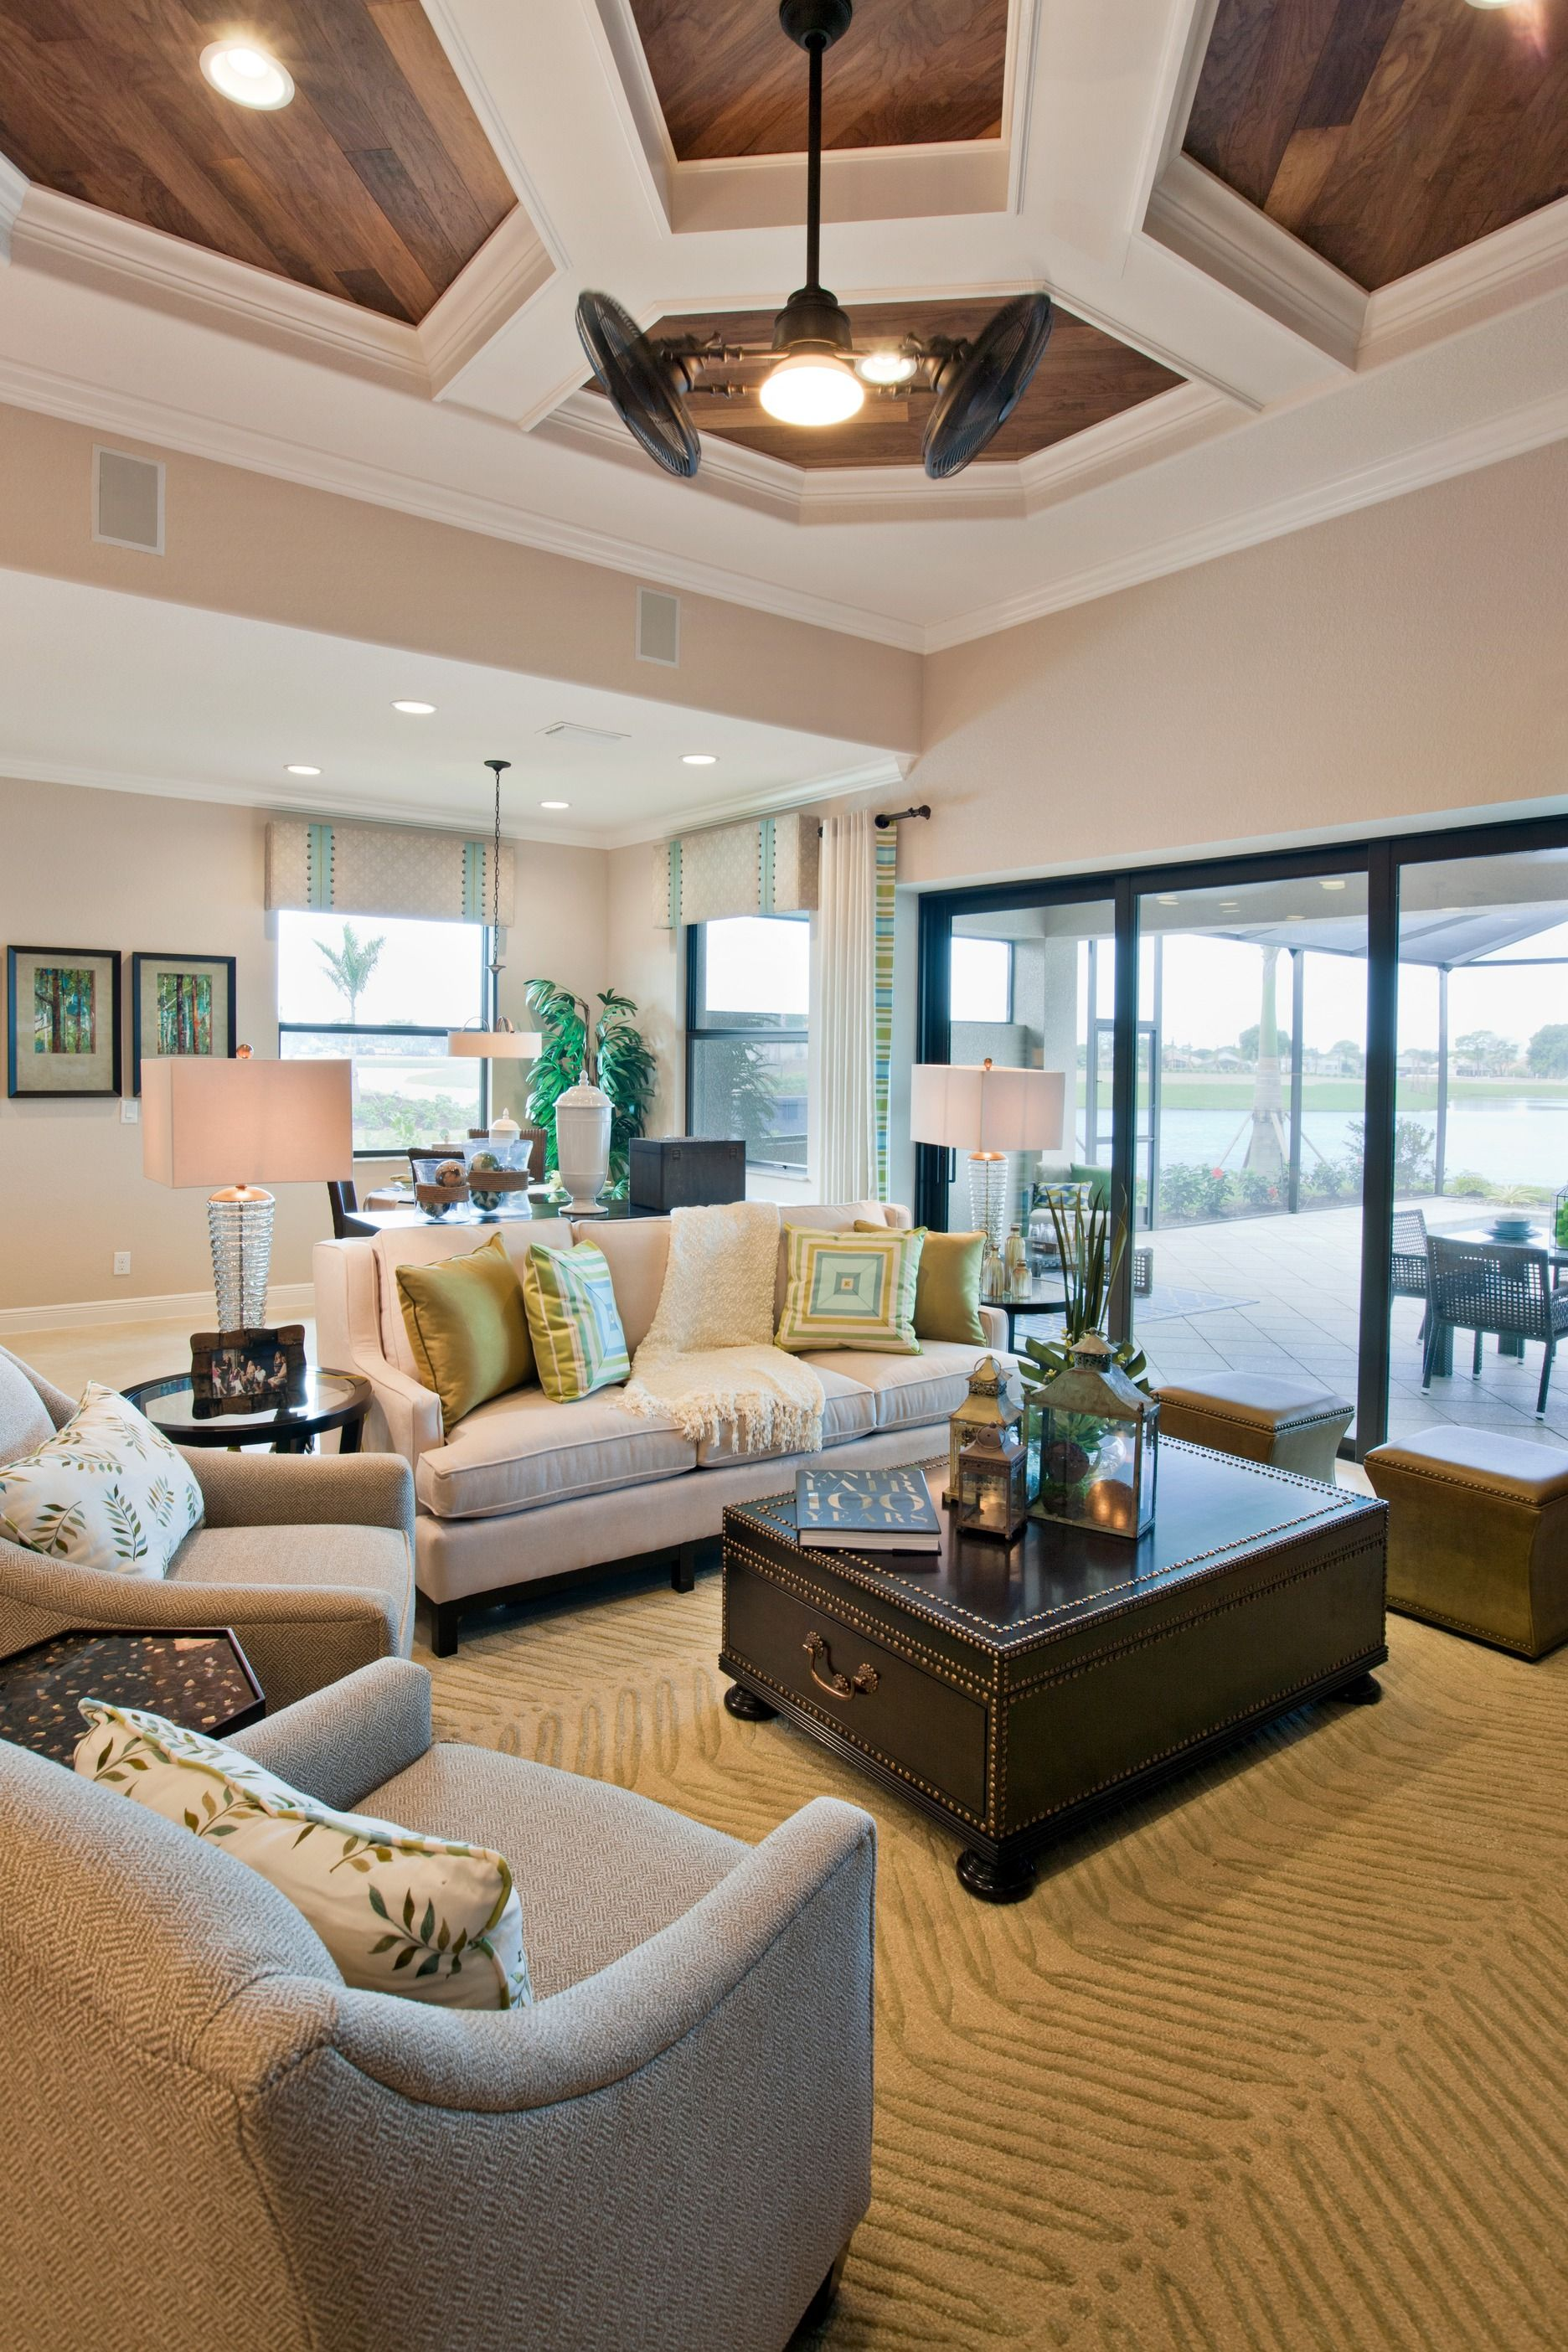 Family Living Room Design: Turn Your Family Room Into A Creative Space By Adding A